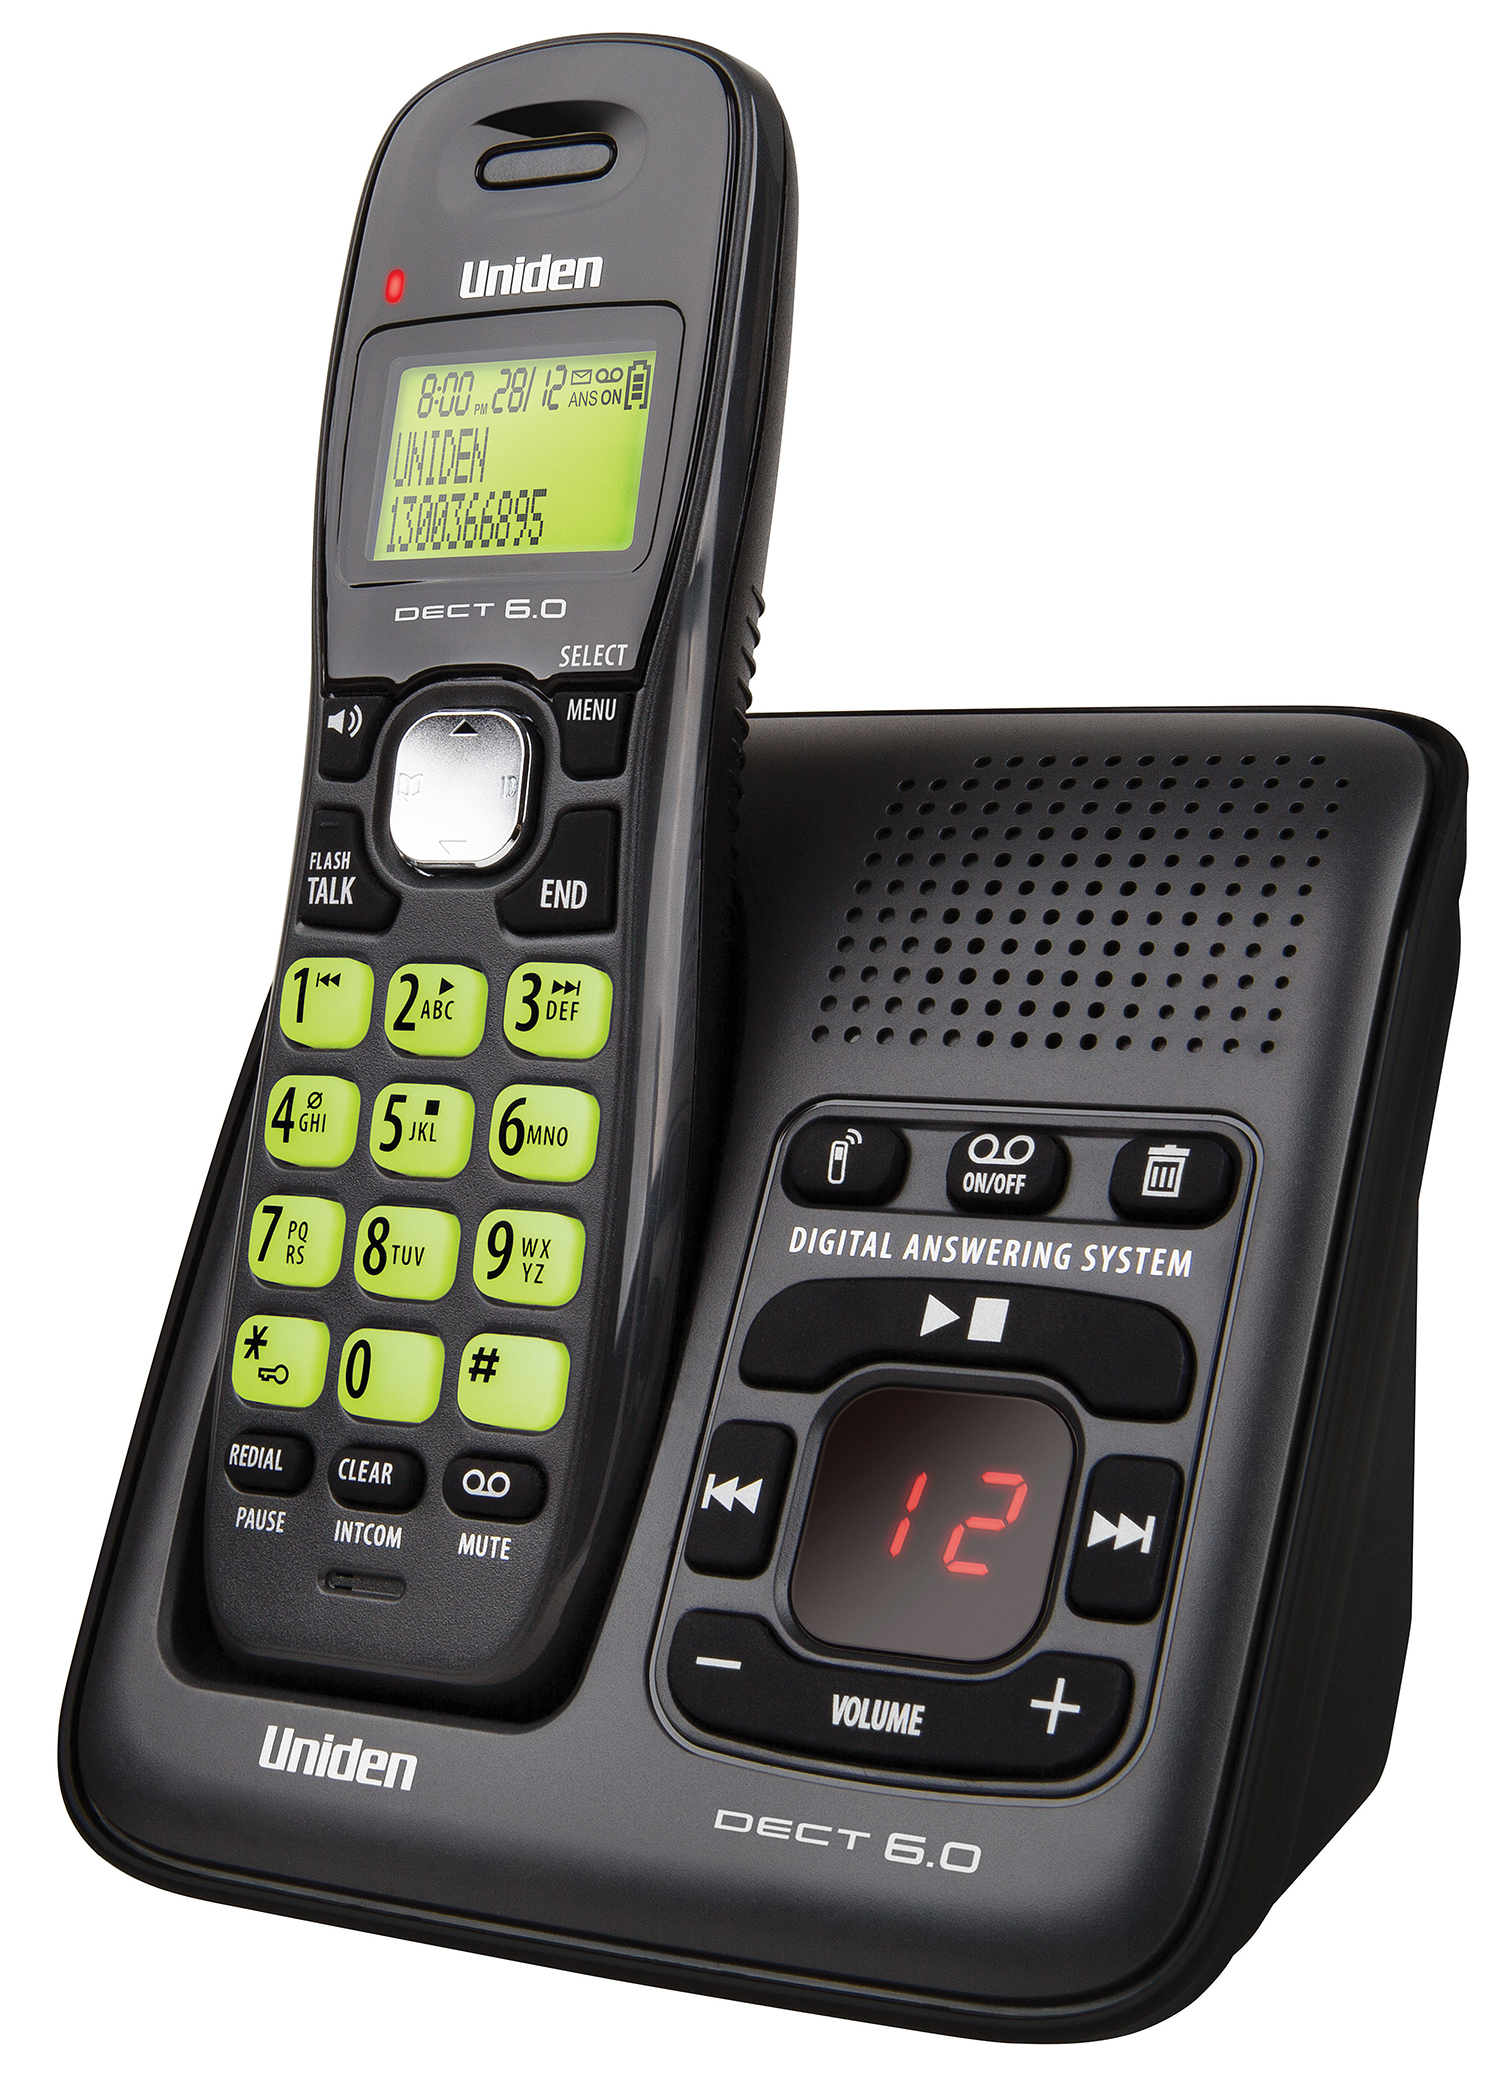 att model 1480 users owners manual corded cordless telephone answering system with caller id call waiting